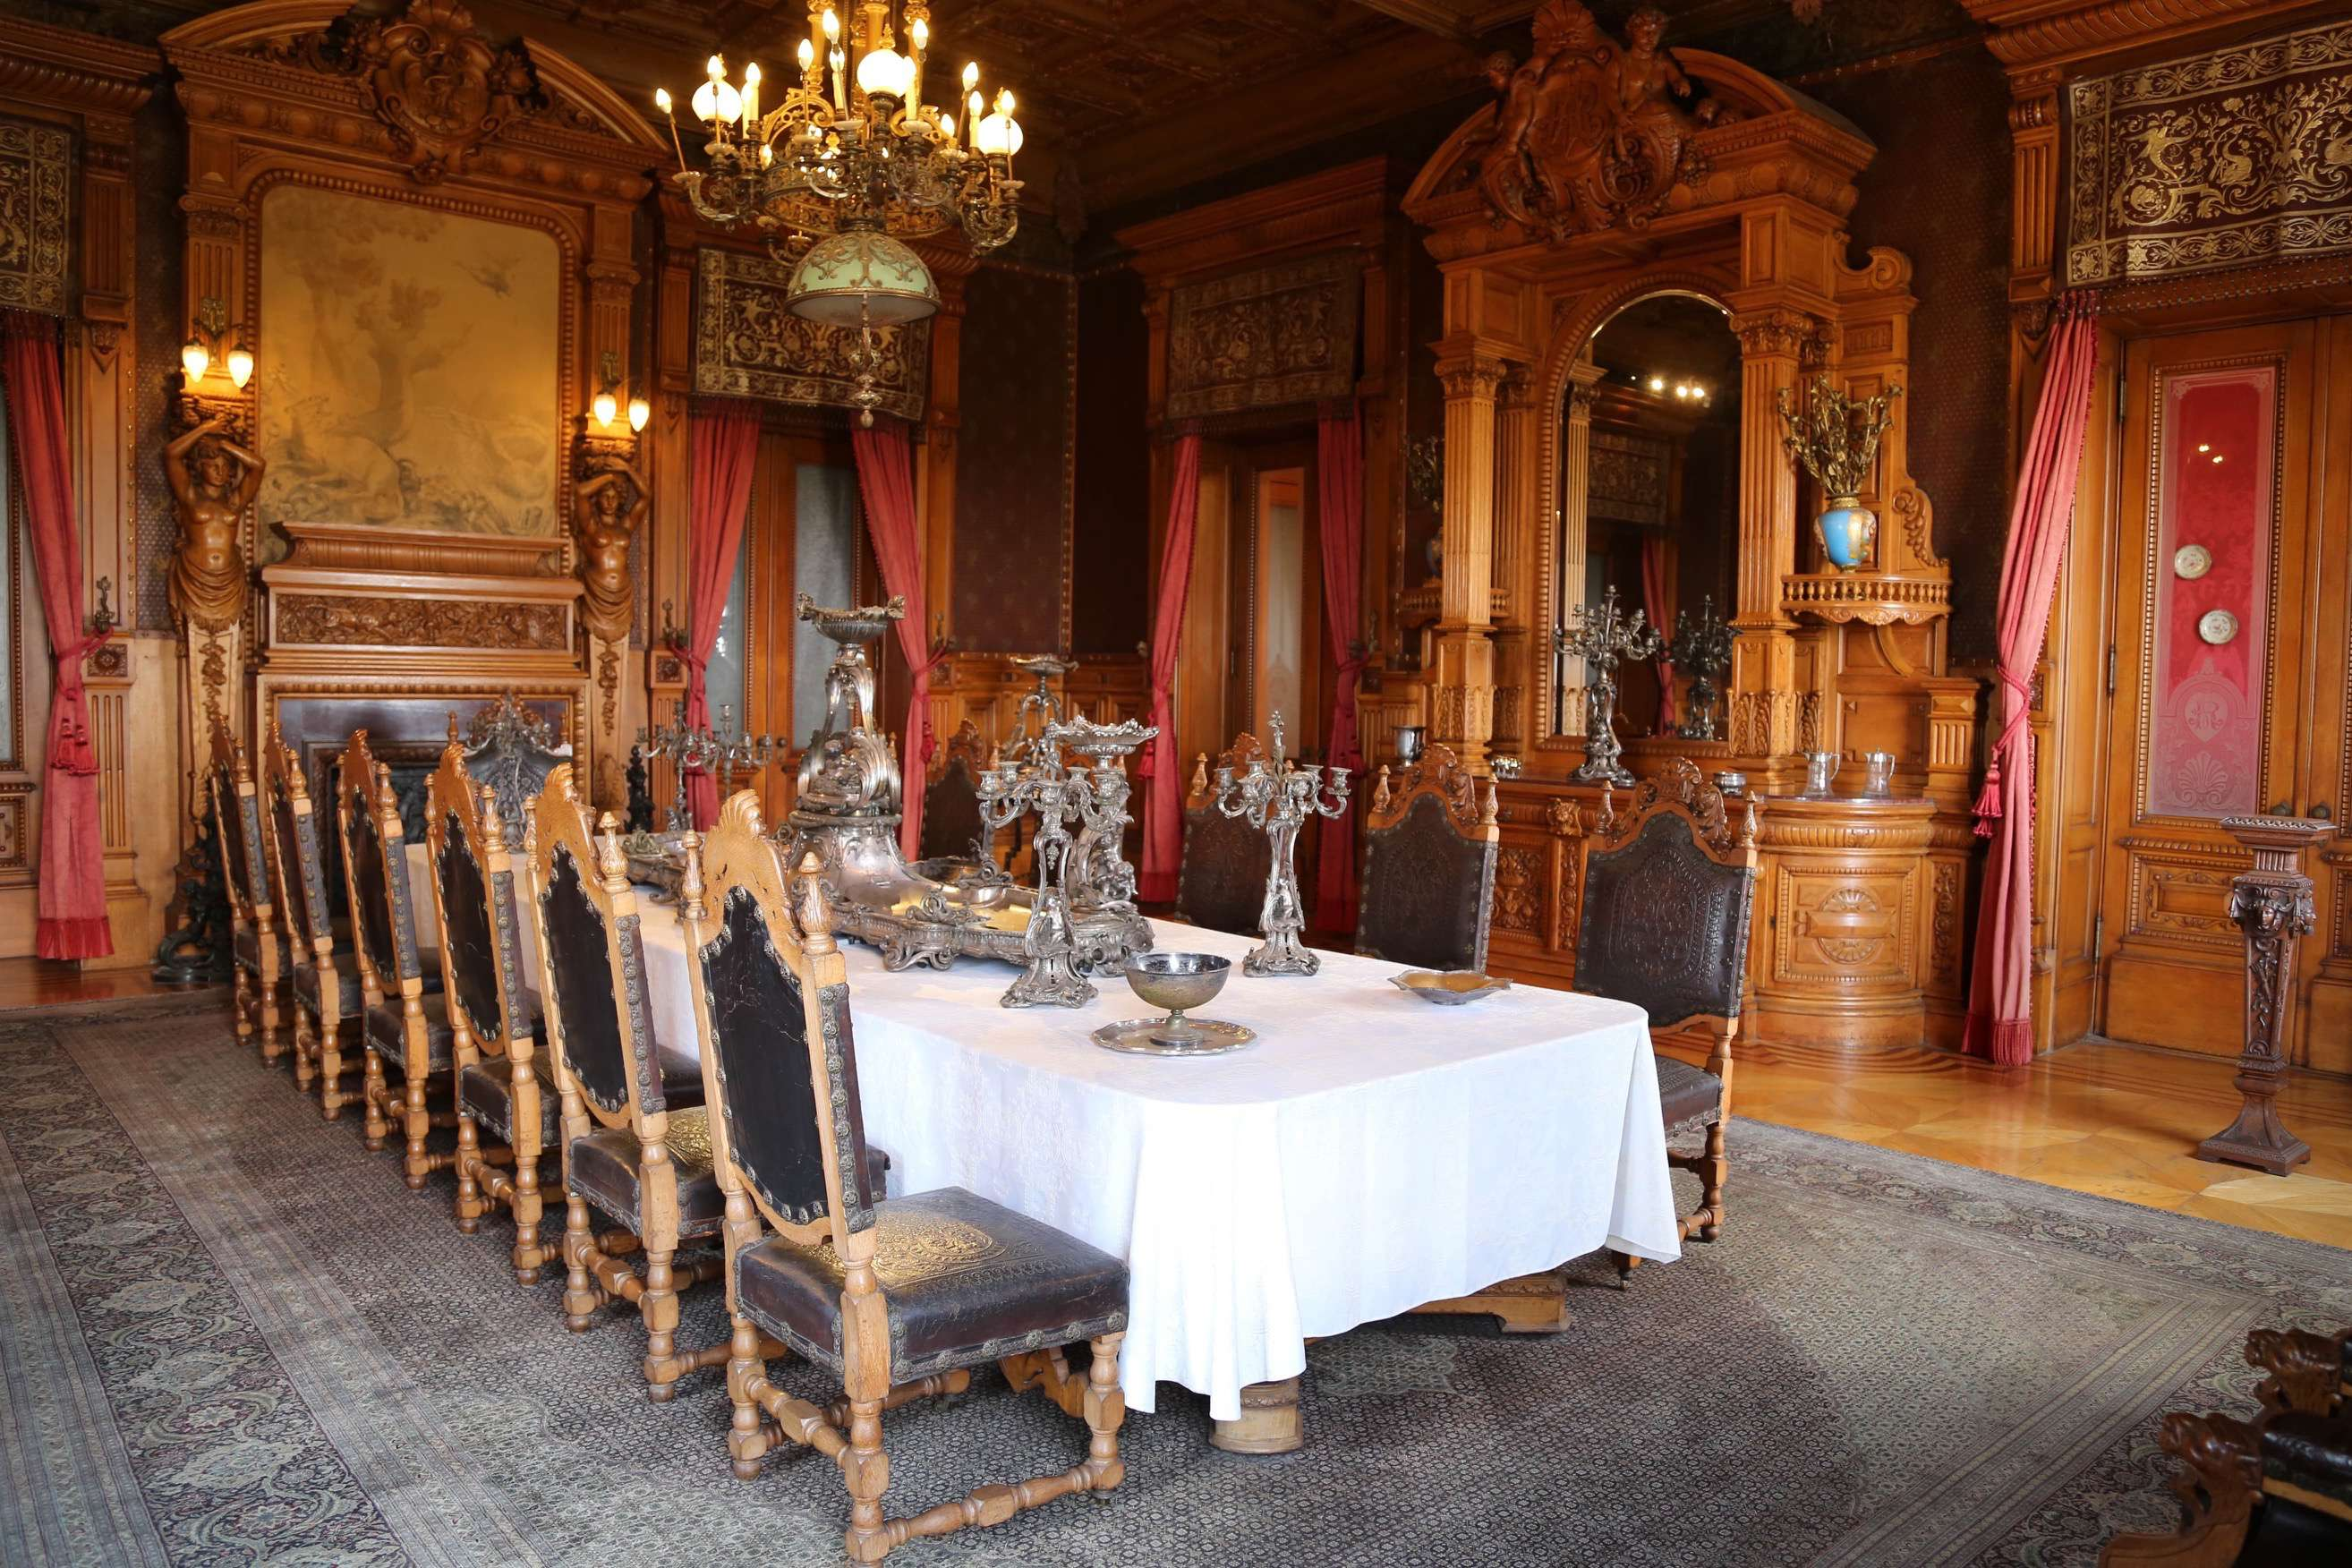 Dinner for 12 was not unusual at a gathering for the rich and powerful at Chapultepec Castle.